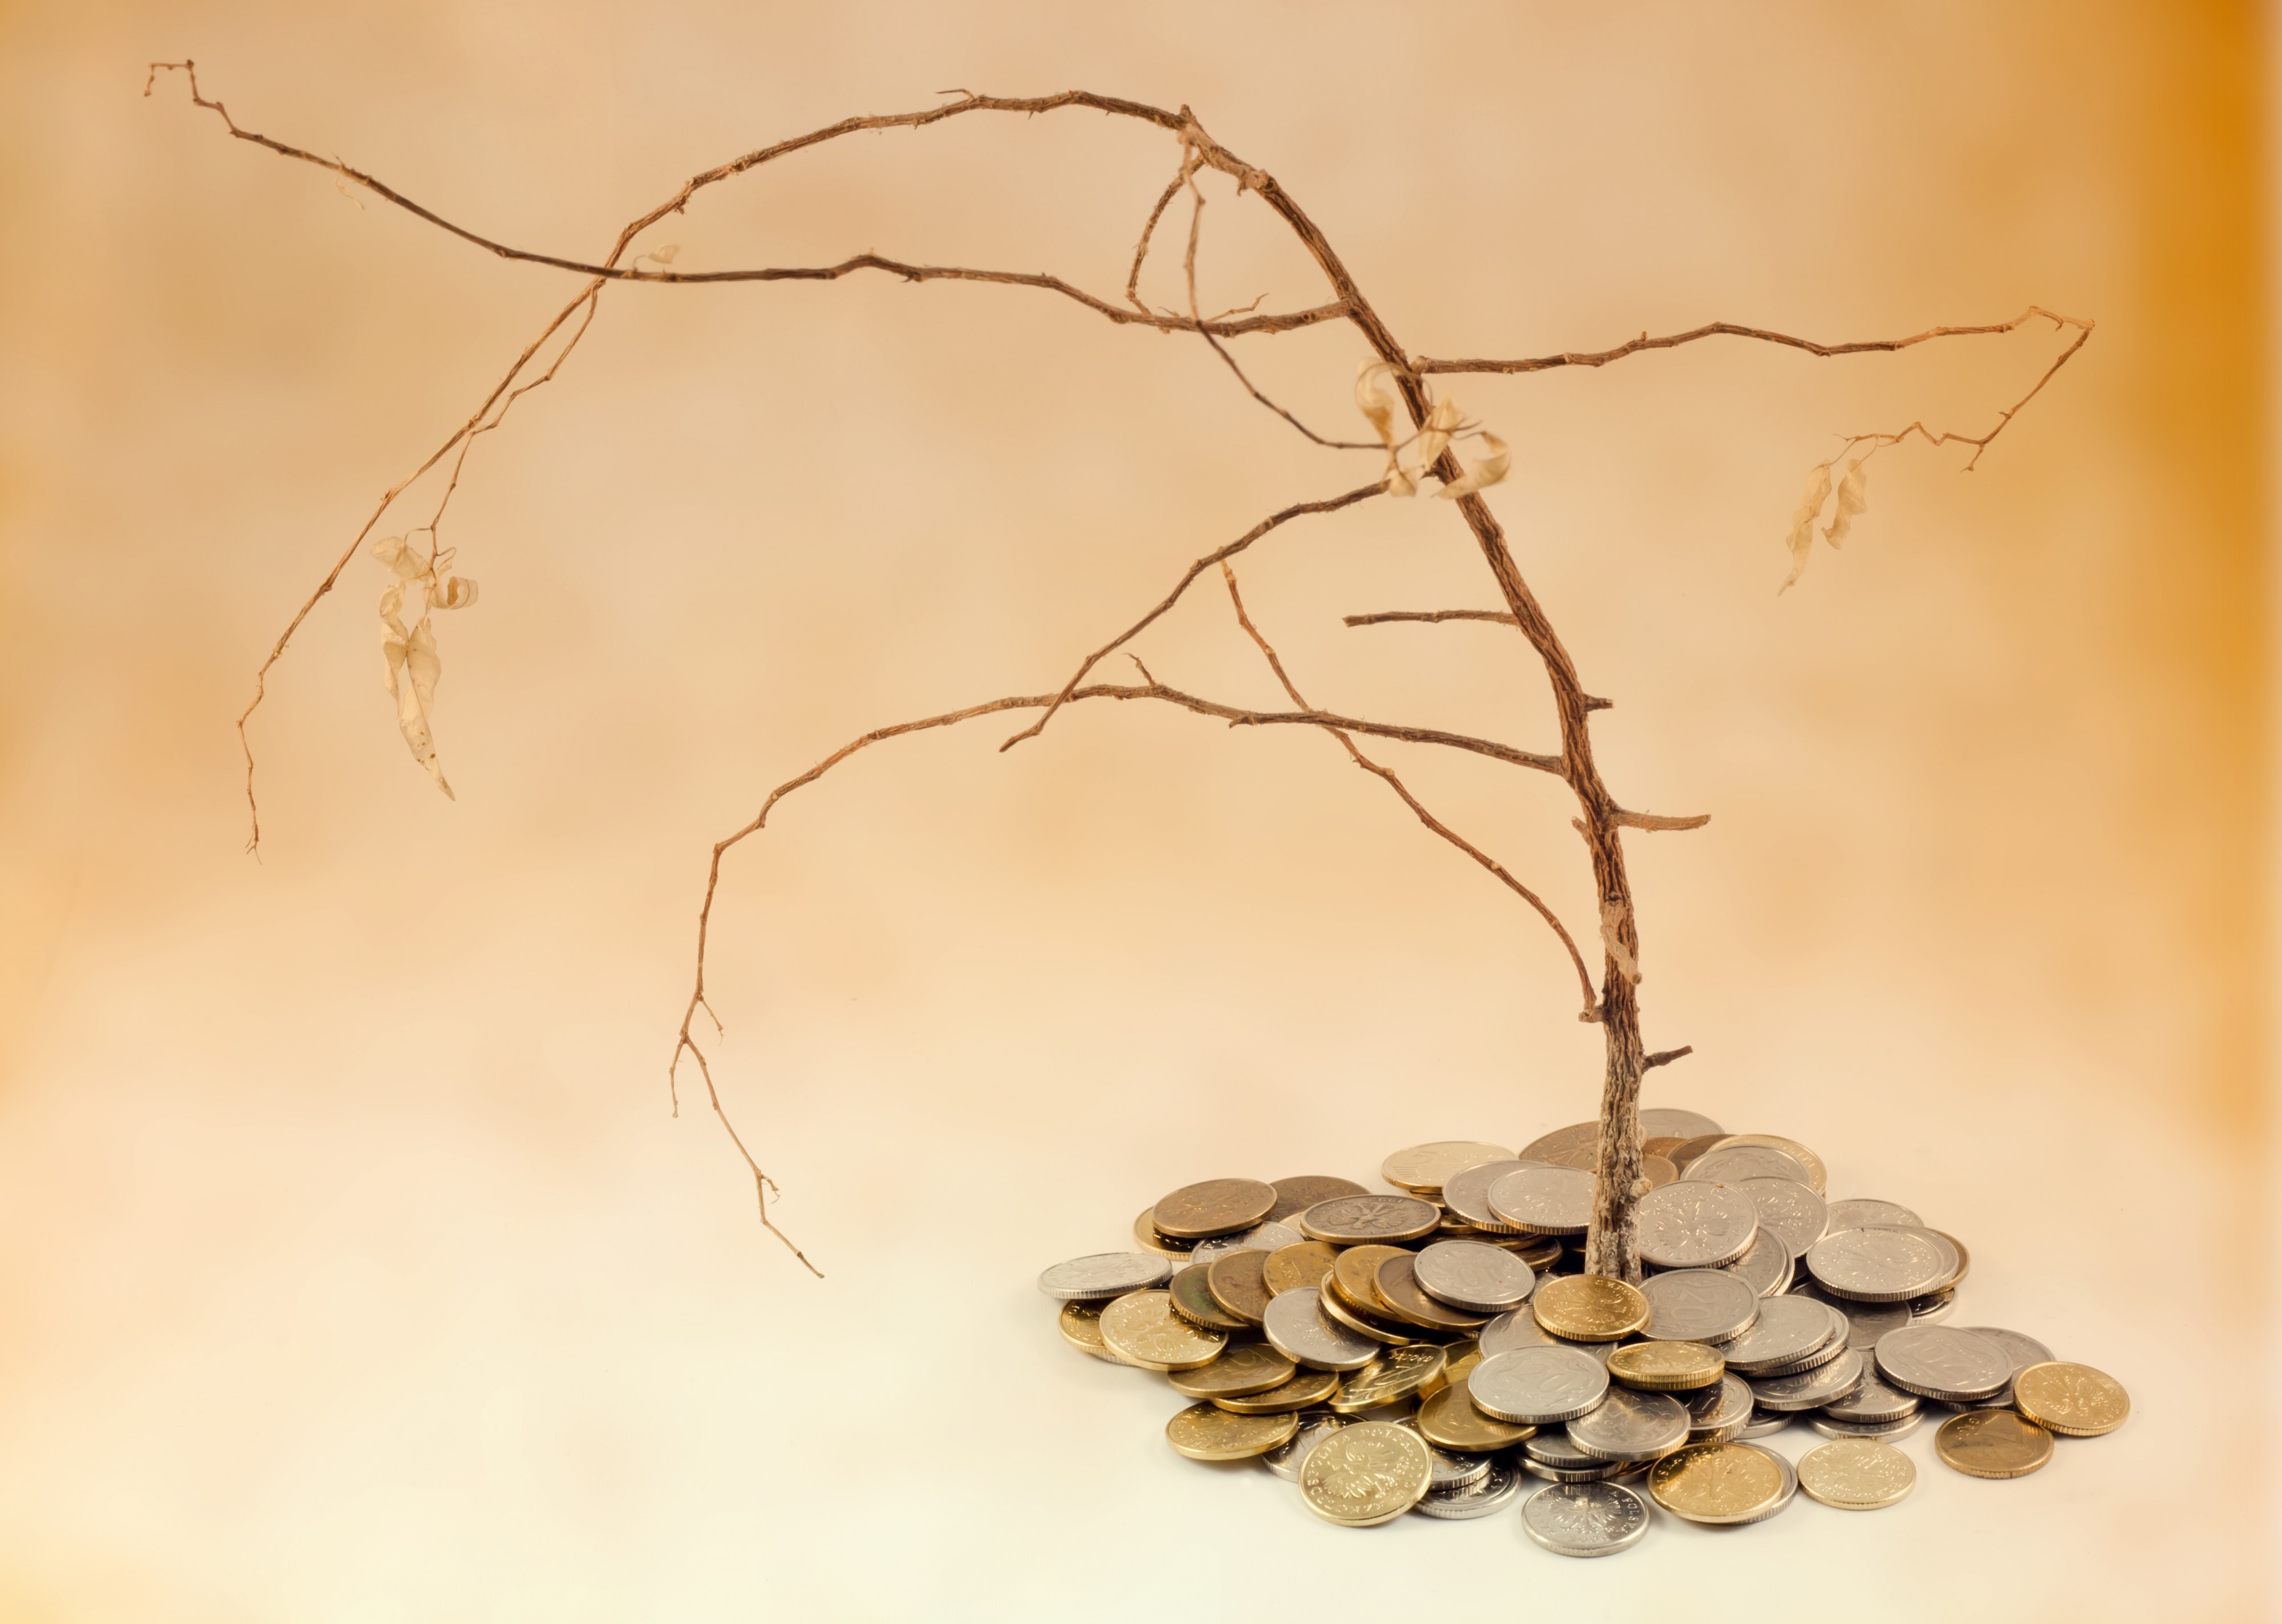 Sometimes we need to recognize that the money and time we've already spent were wasted and just move on. (udra11/Shutterstock)